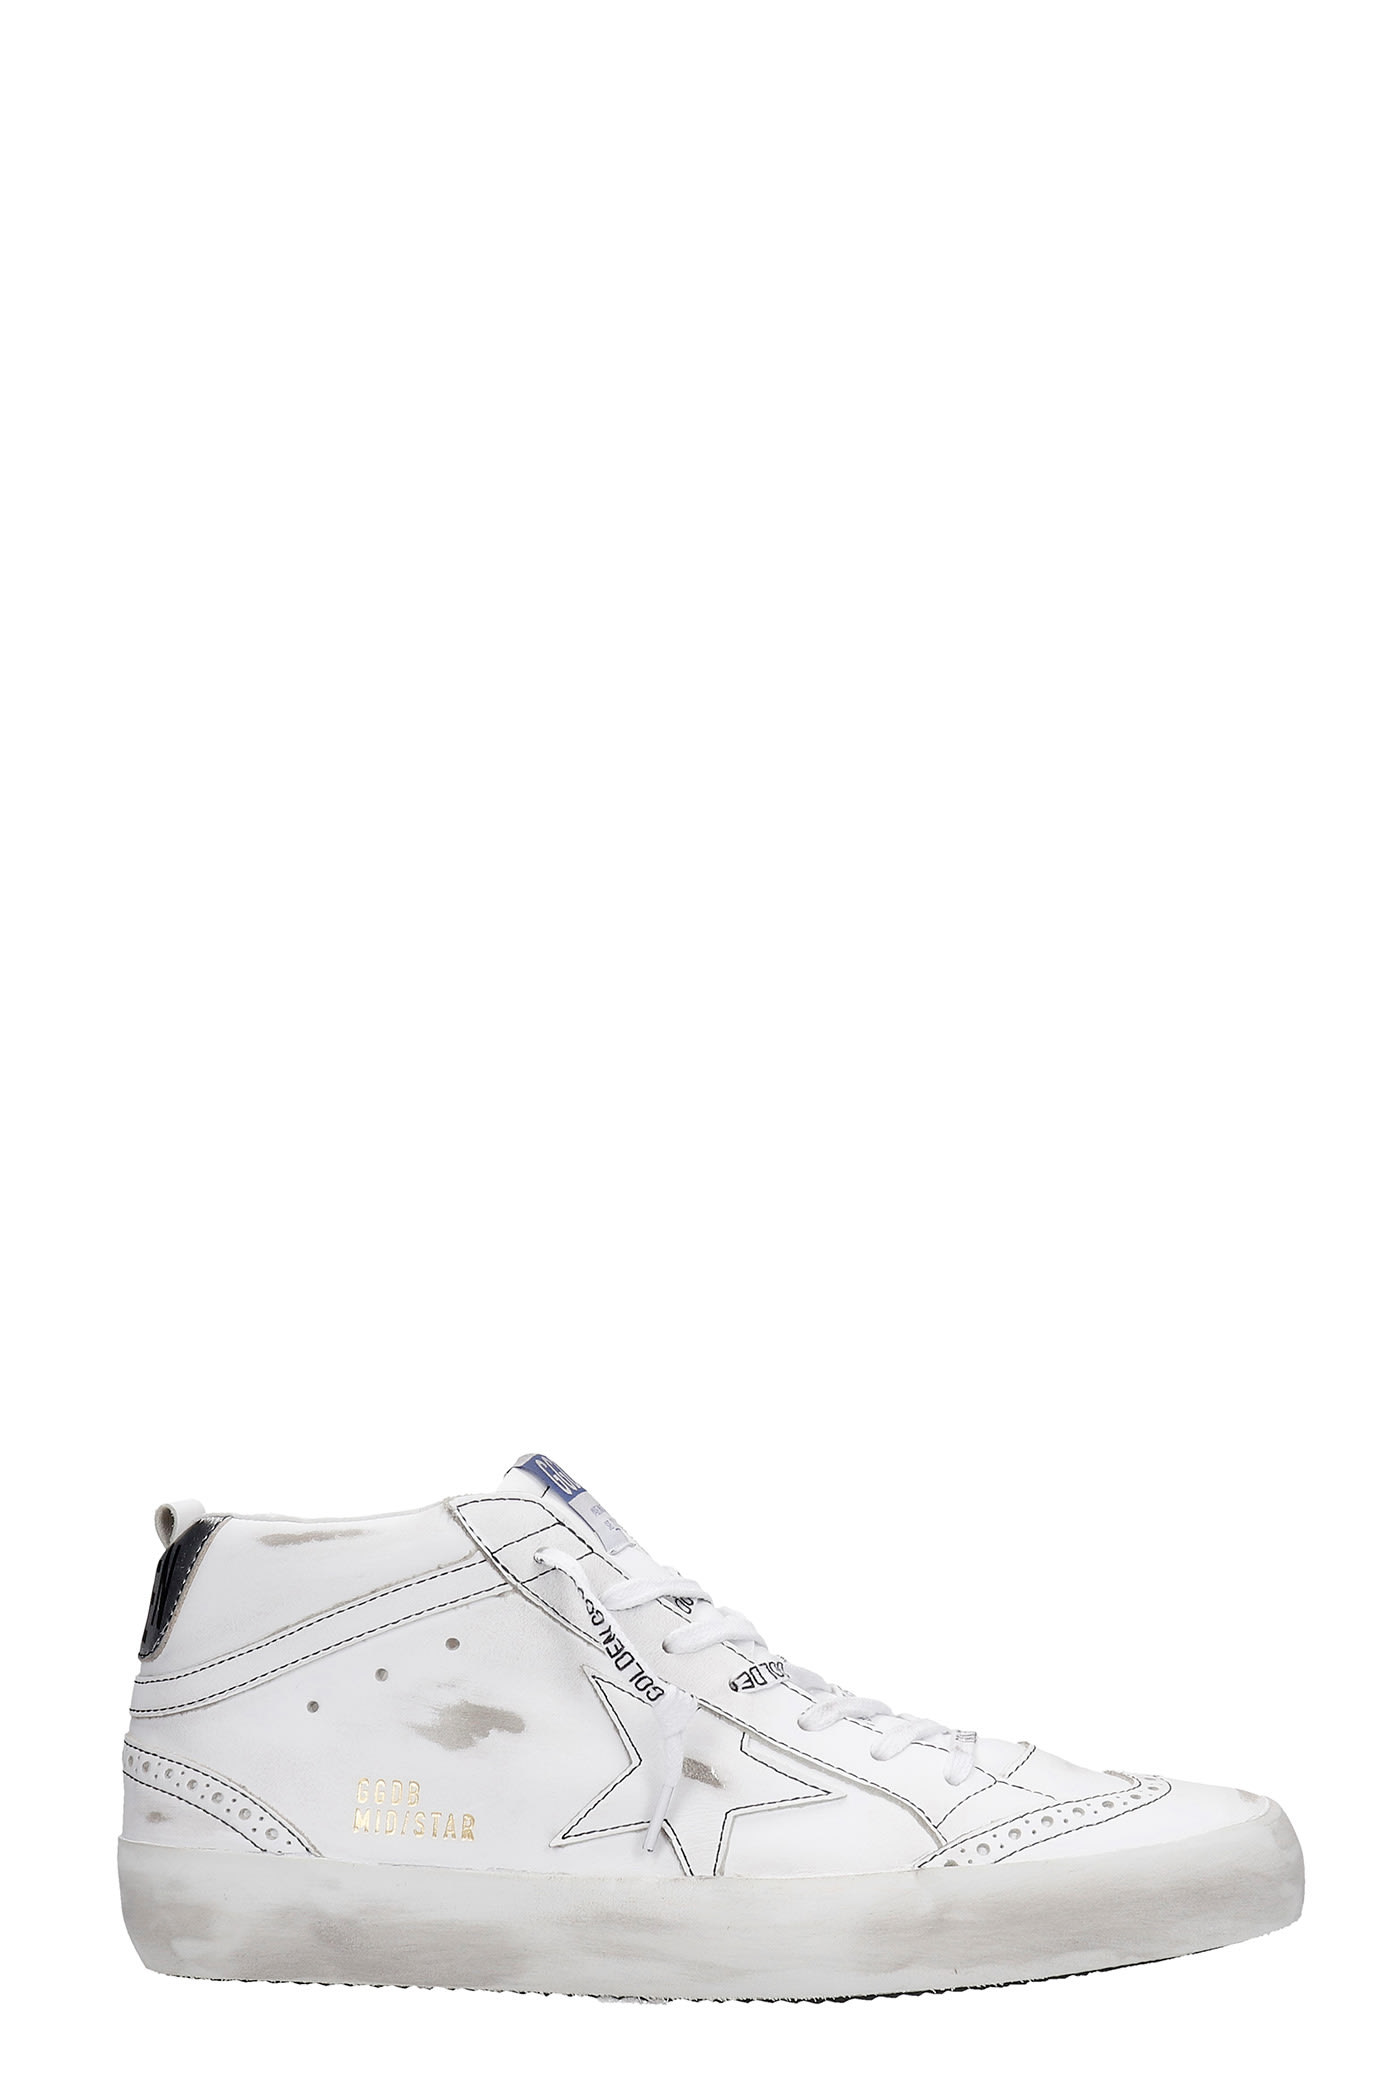 Golden Goose MID STAR SNEAKERS IN WHITE LEATHER